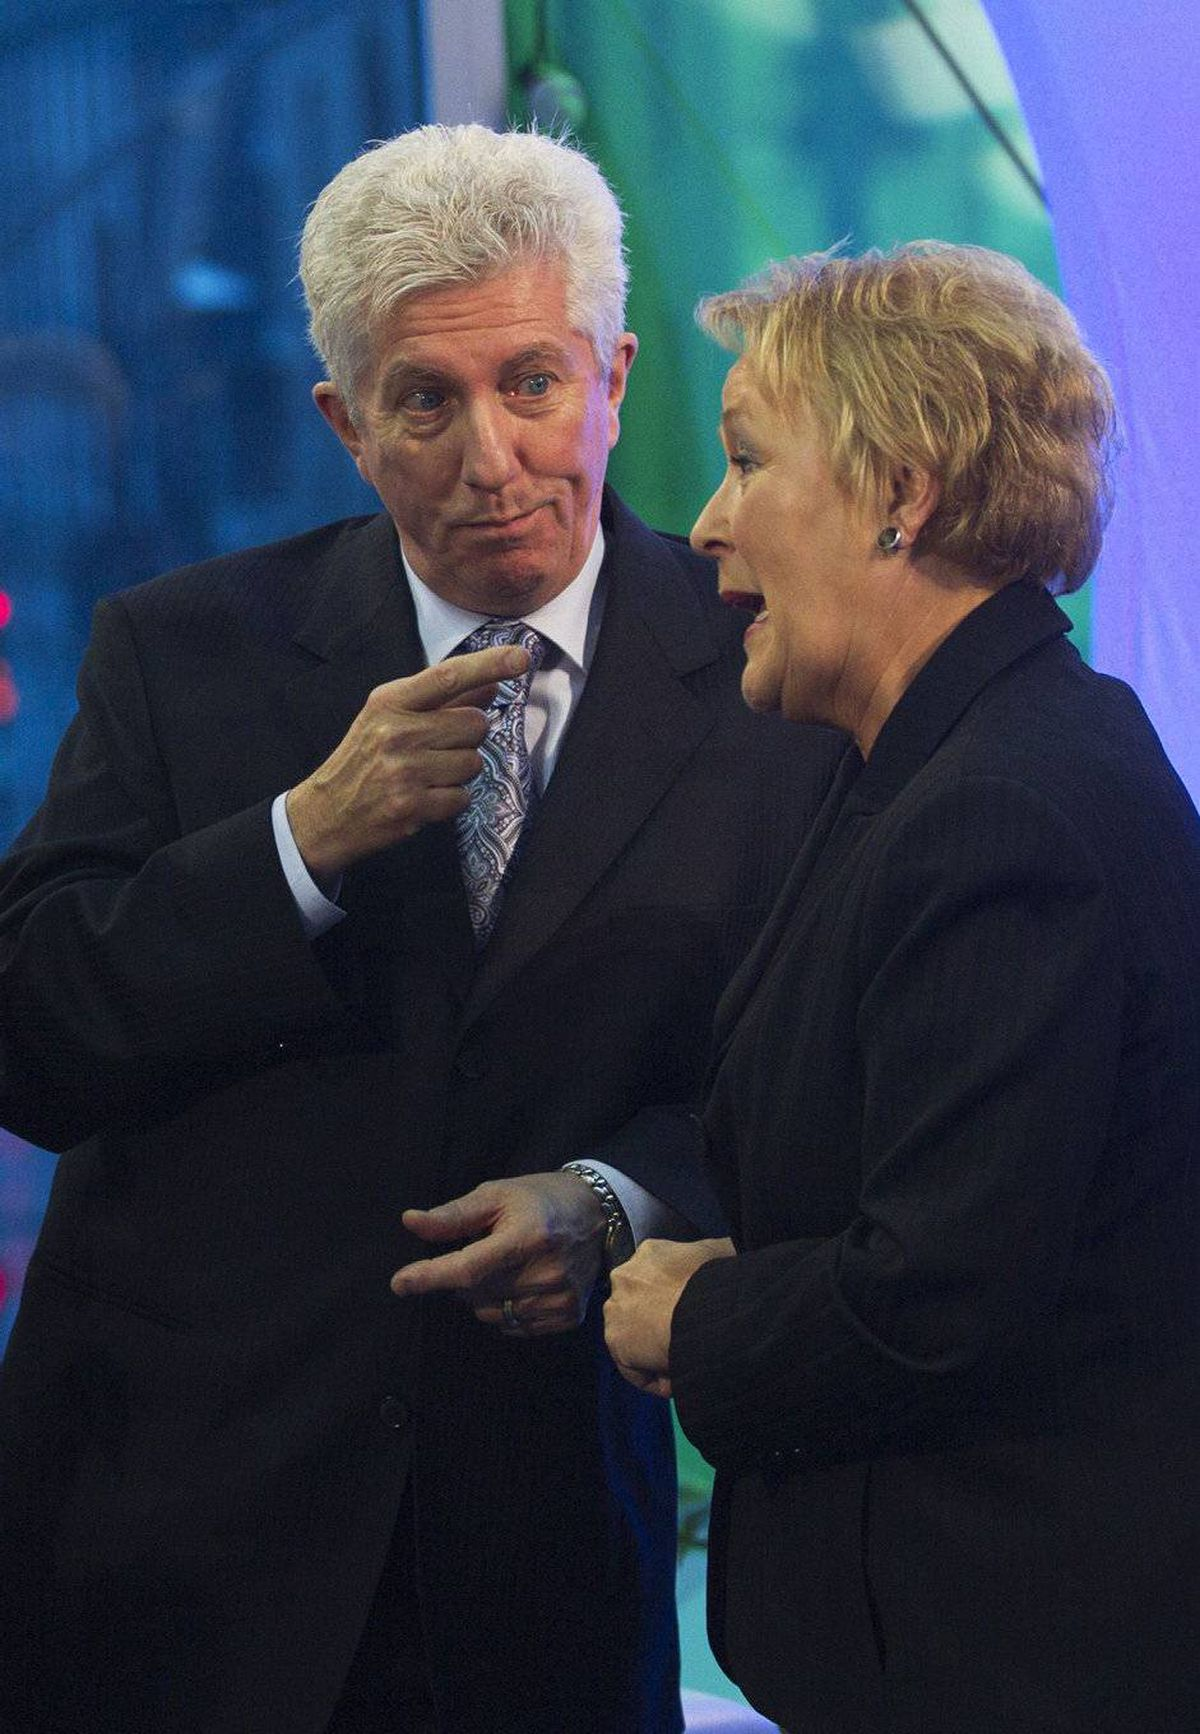 "Bloc Québécois Leader Gilles Duceppe started Saturday morning with a breakfast with supporters in Quebec City, followed by a speech to union workers. He then traveled to St-Tite to visit a micro-brewery. On Sunday, at a Parti Quebecois policy convention that reaffirmed Pauline Marois' leadership, Mr. Duceppe said that Quebeckers had taken a further step down the path to sovereignty. ""We have only one task to accomplish,"" he told delegates. ""Elect the maximum number of sovereigntists in Ottawa and then we go to the next phase: electing a PQ government. ""A strong Bloc in Ottawa. The PQ in power in Quebec. And everything again becomes possible."" (Photo: Bloc Quebecois leader Gilles Duceppe (2nd R) speaks with Pauline Marois (R), leader of the Parti Quebecois)"